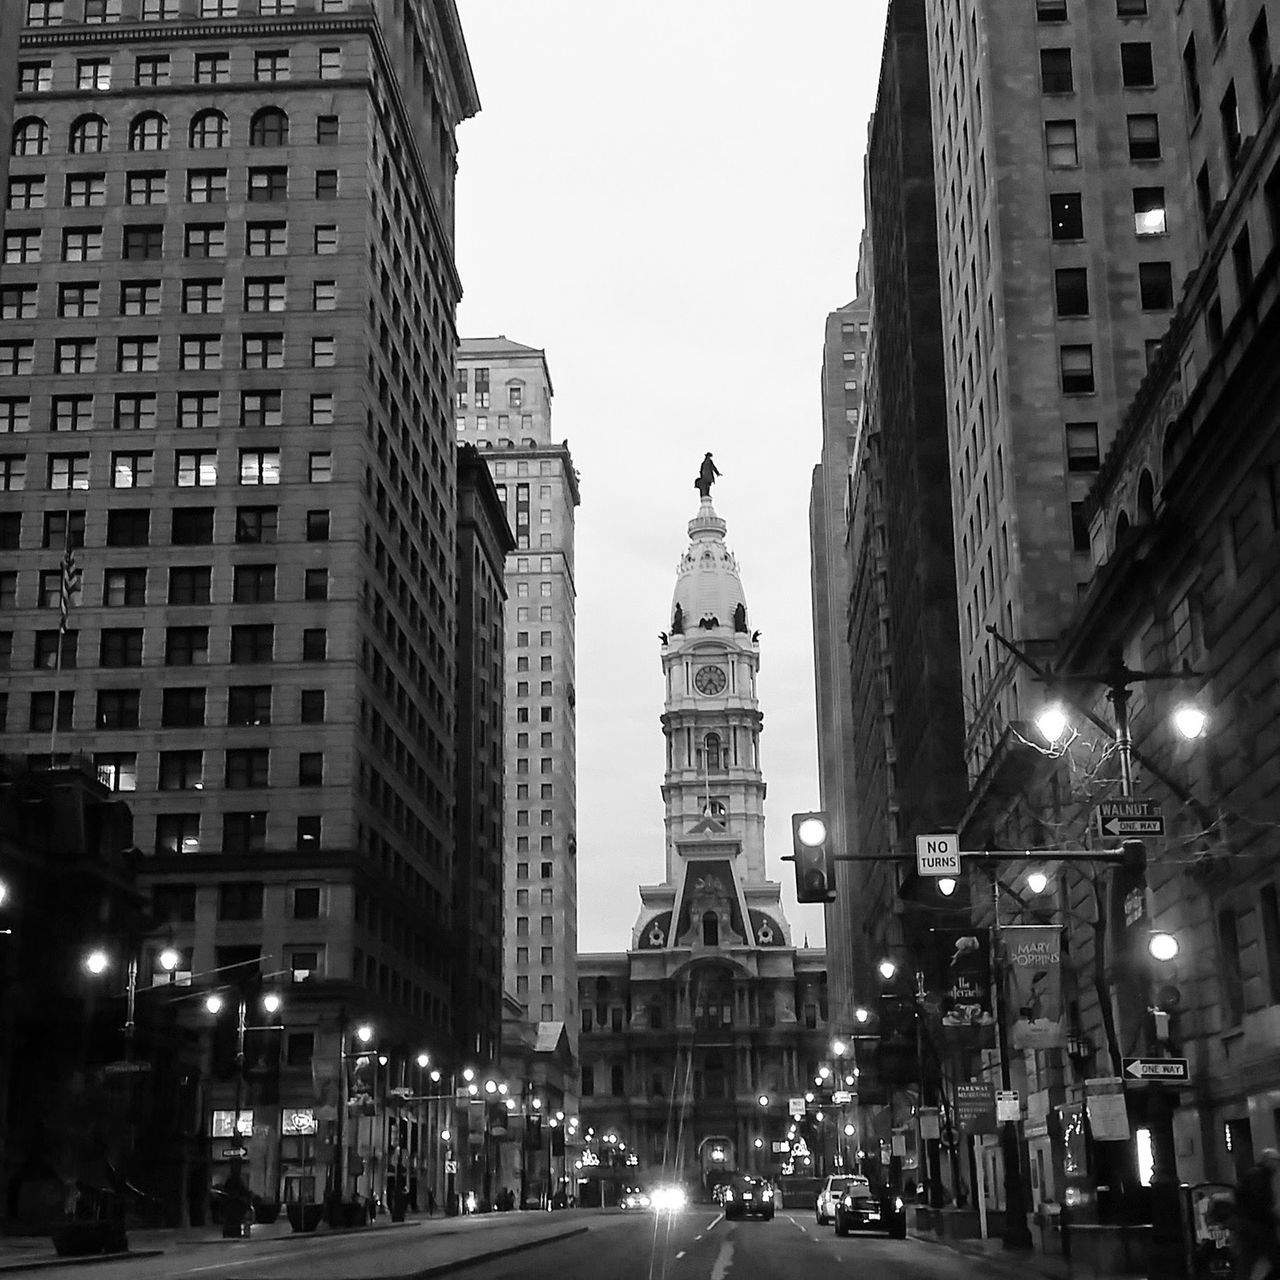 Philadelphia Cityhall Benfranklin Blackandwhite Urban Photography Urban Life Urban Landscape Pennsylvania Philly Phillyphotographer Broad Street 215 Cityscapes City Life City Lights